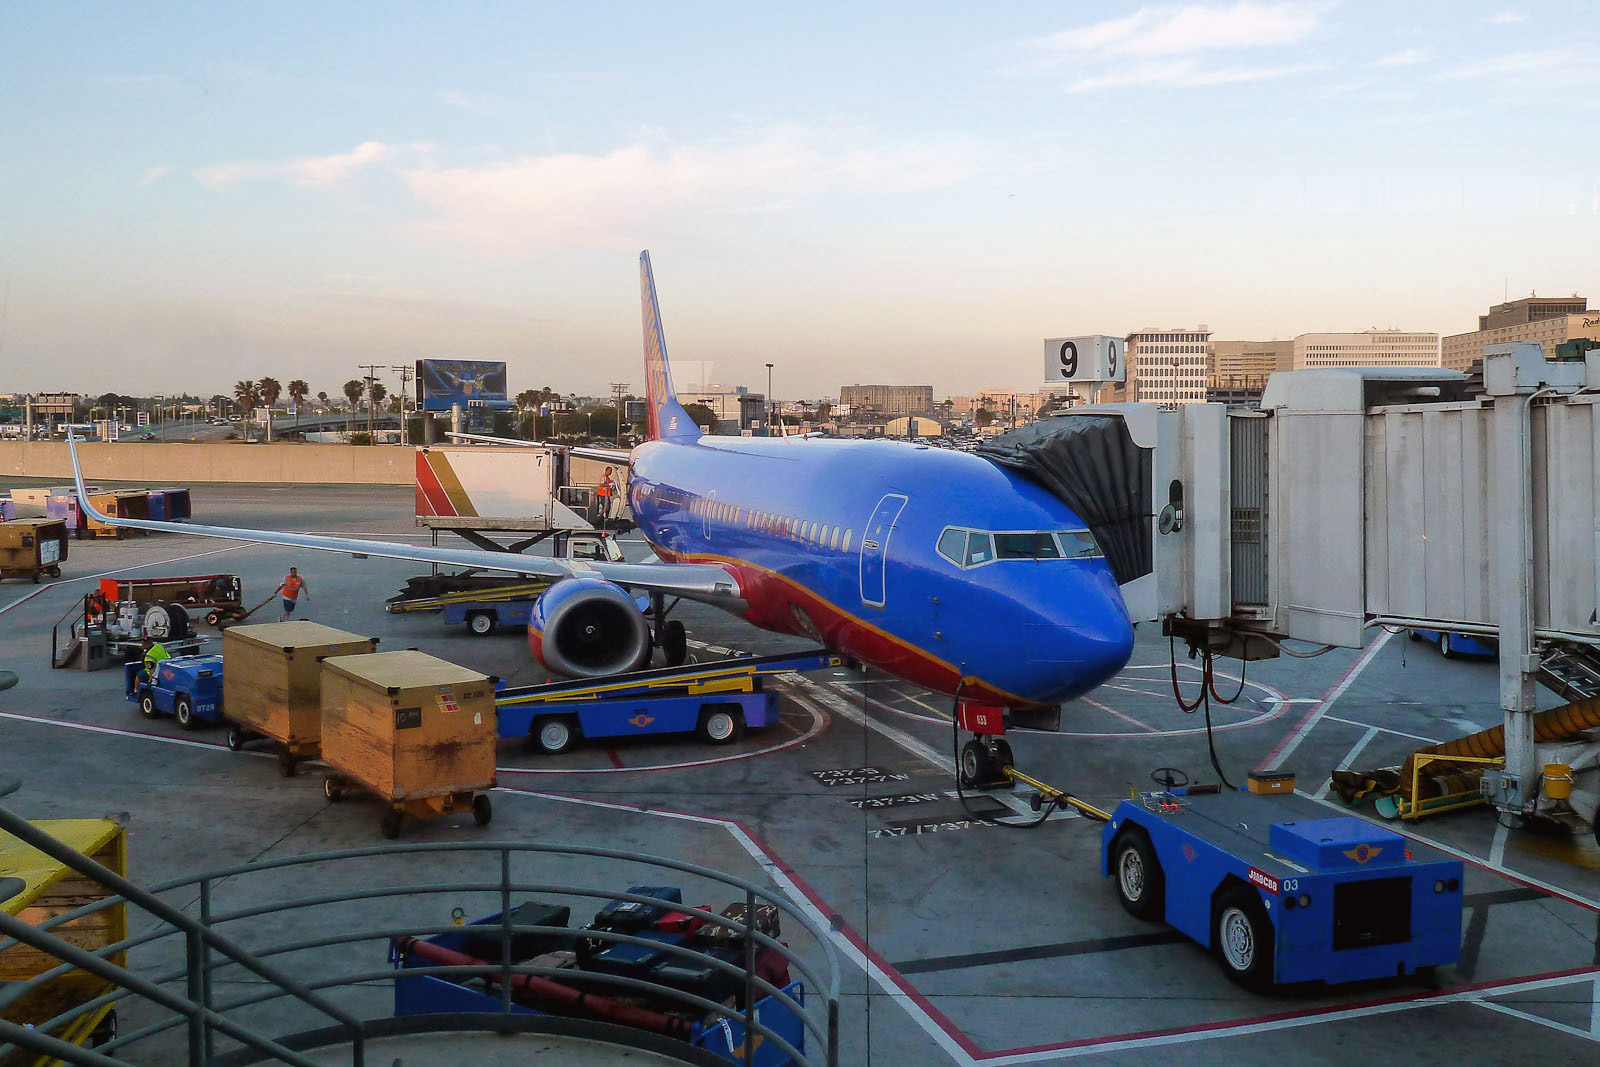 Southwest Boeing 737 at Los Angeles airport